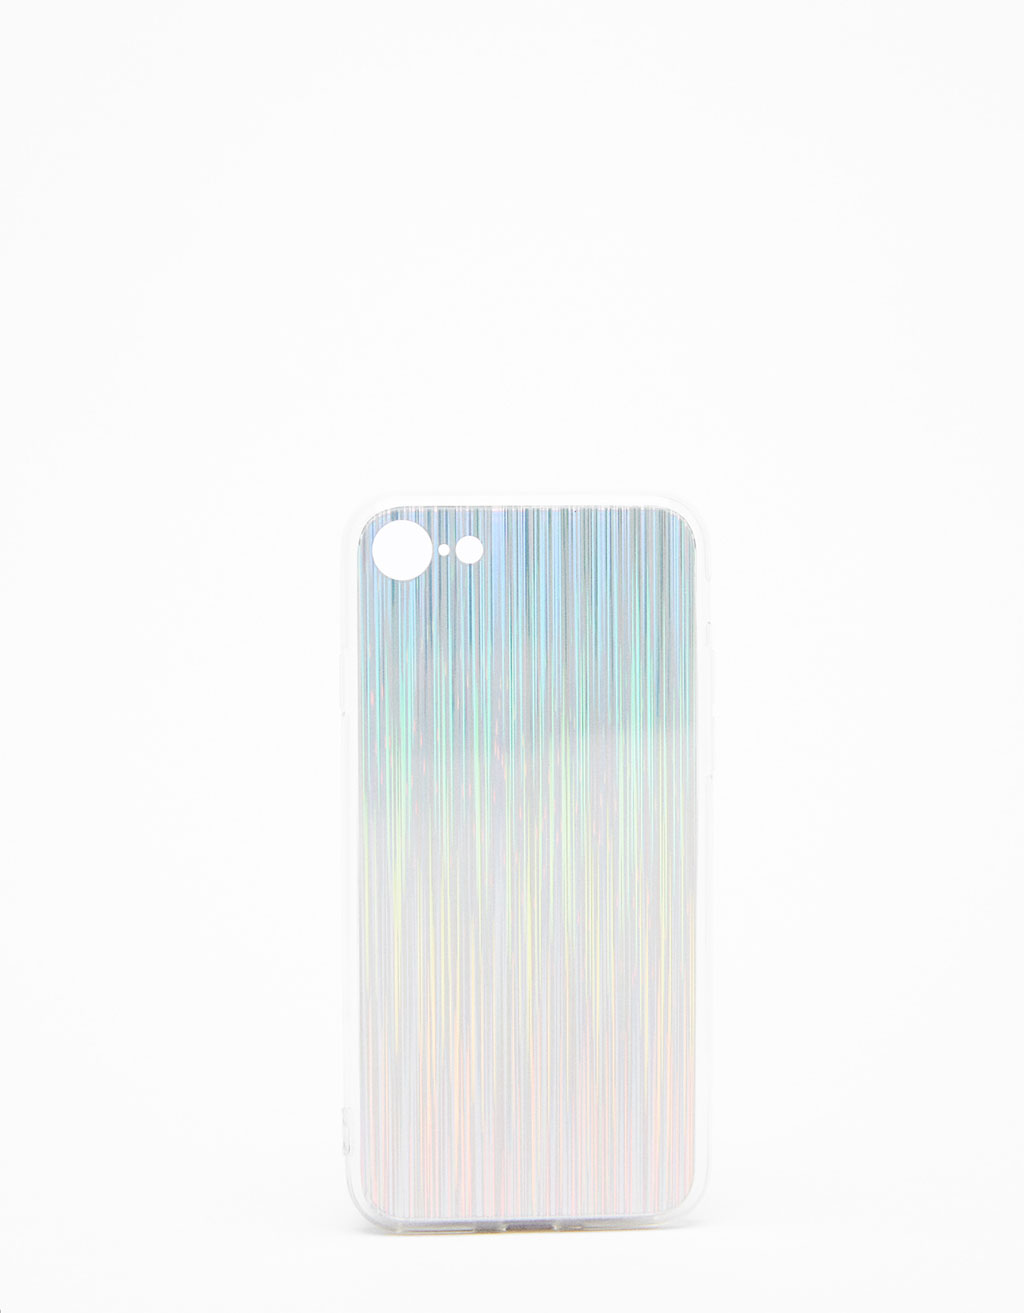 Iridescent iPhone 7 cover